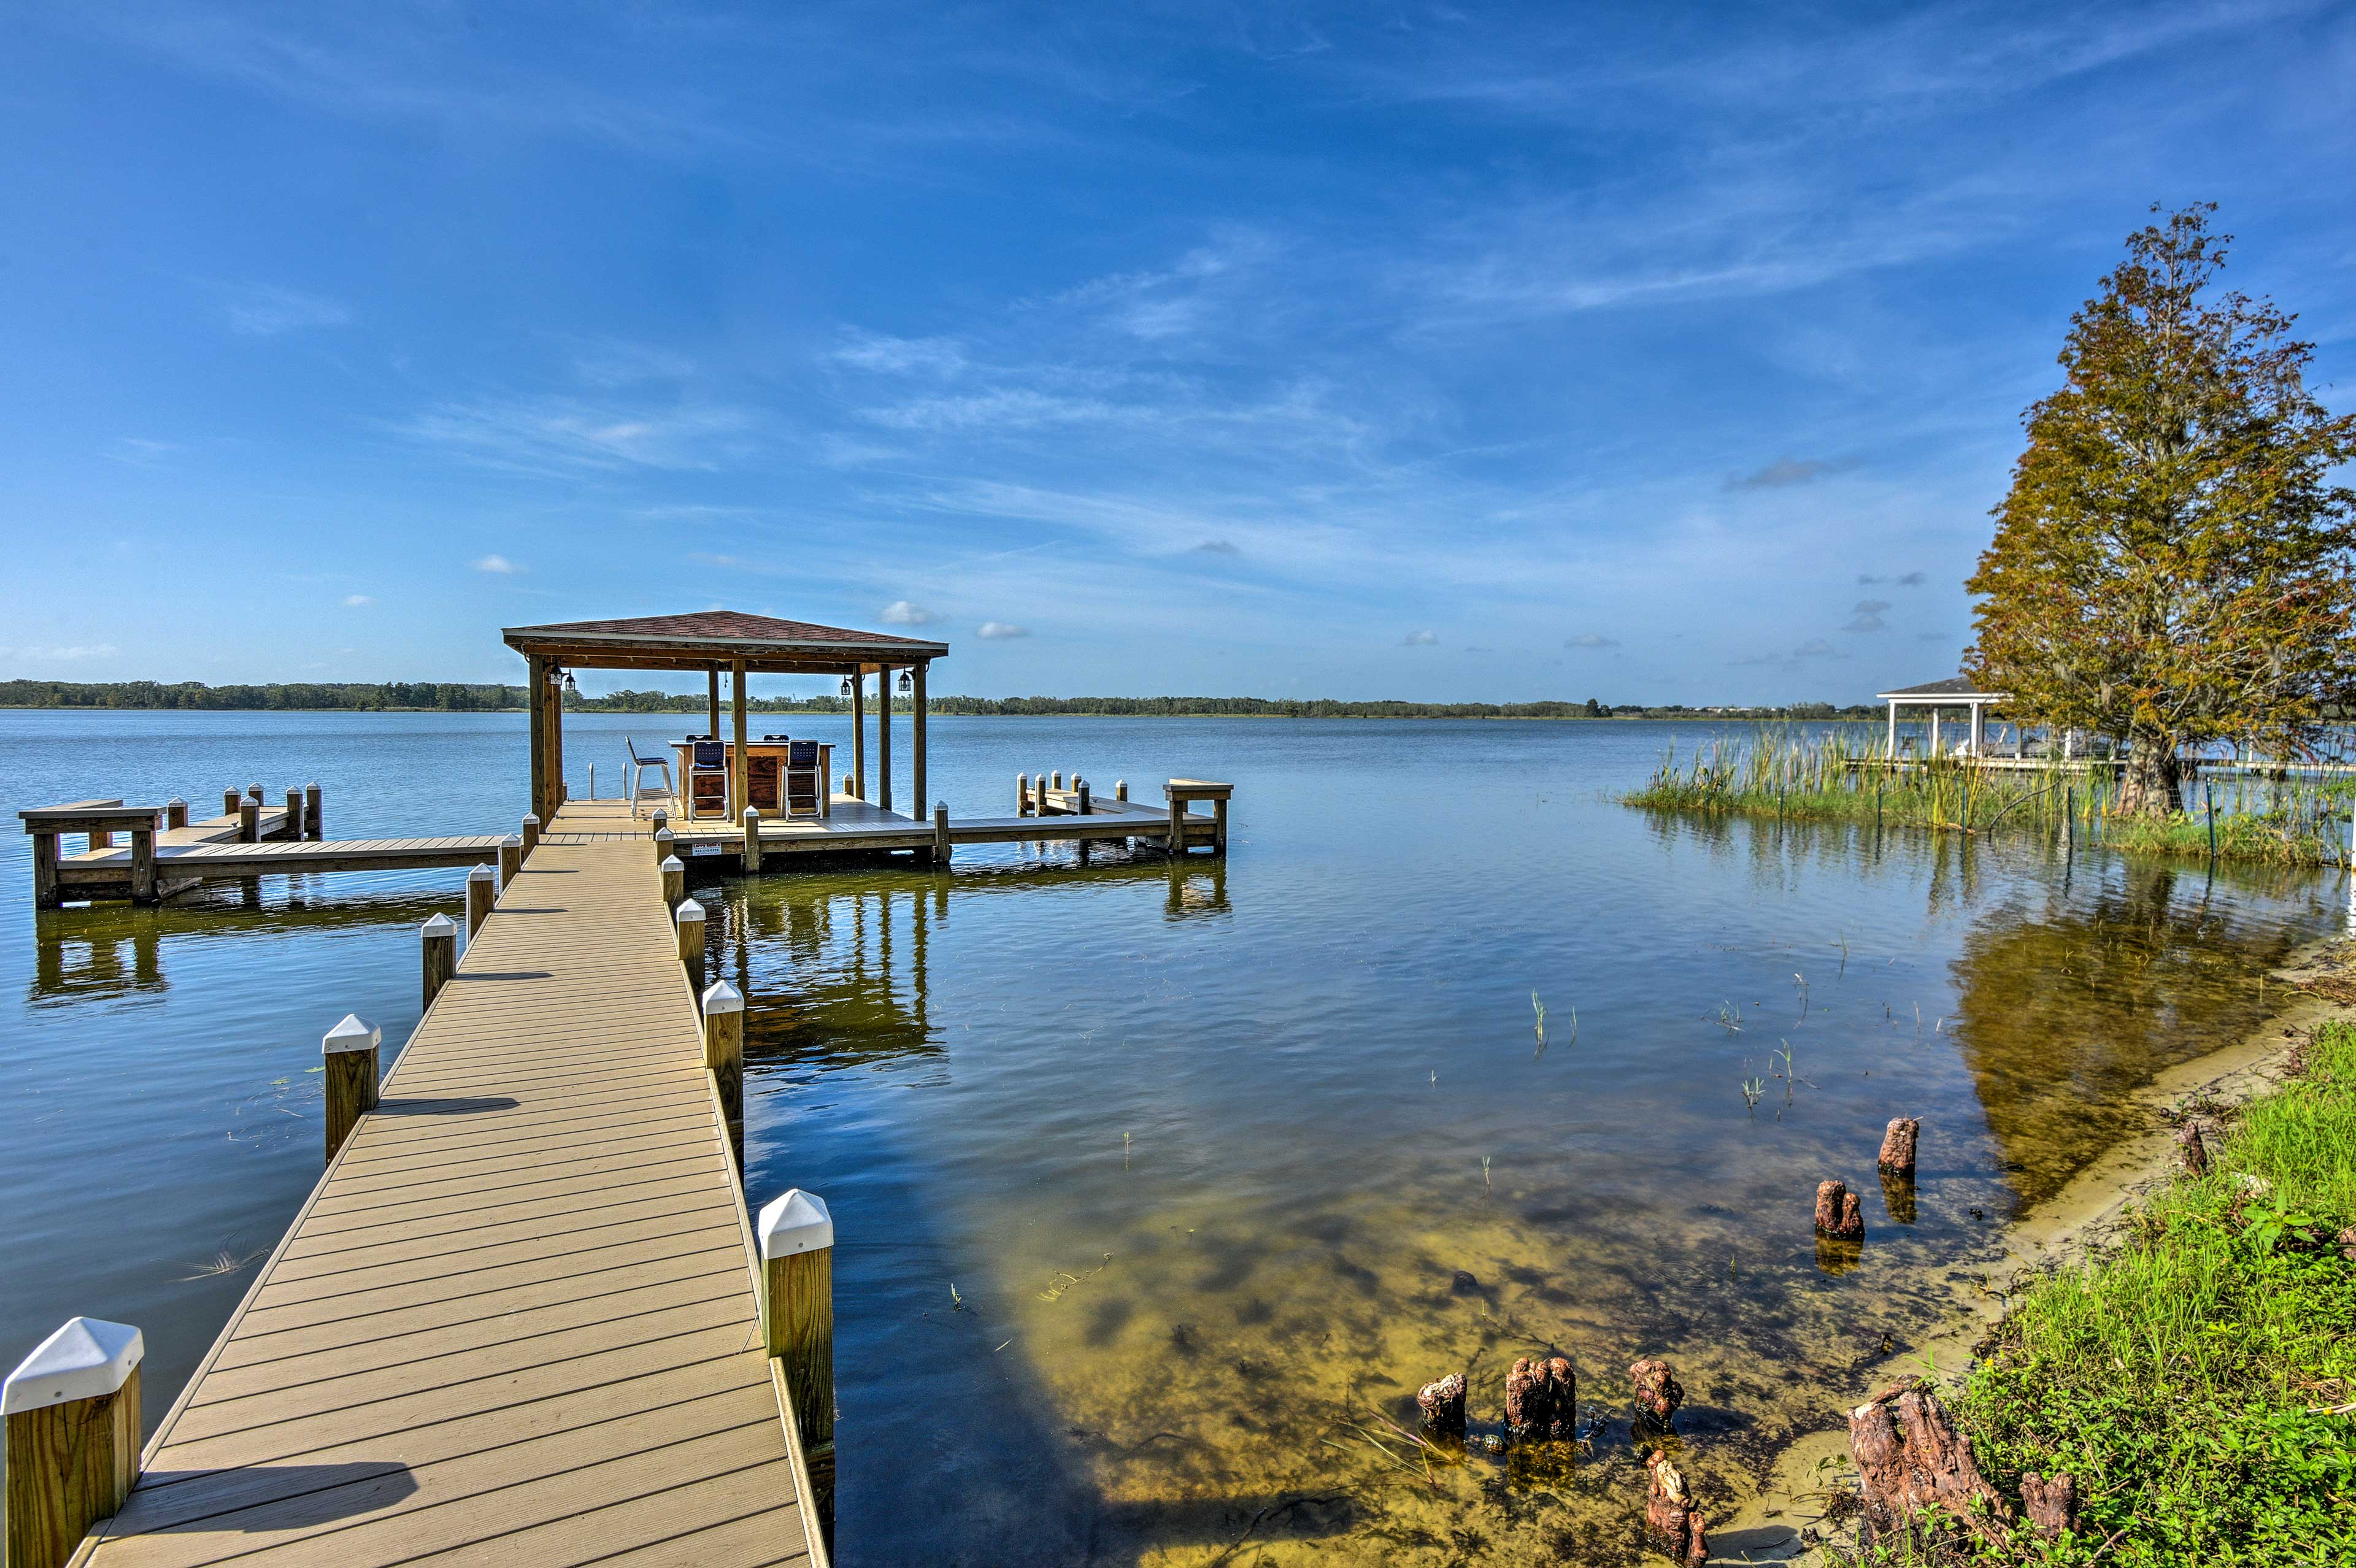 This 26-foot dock can host 4-6 boats.